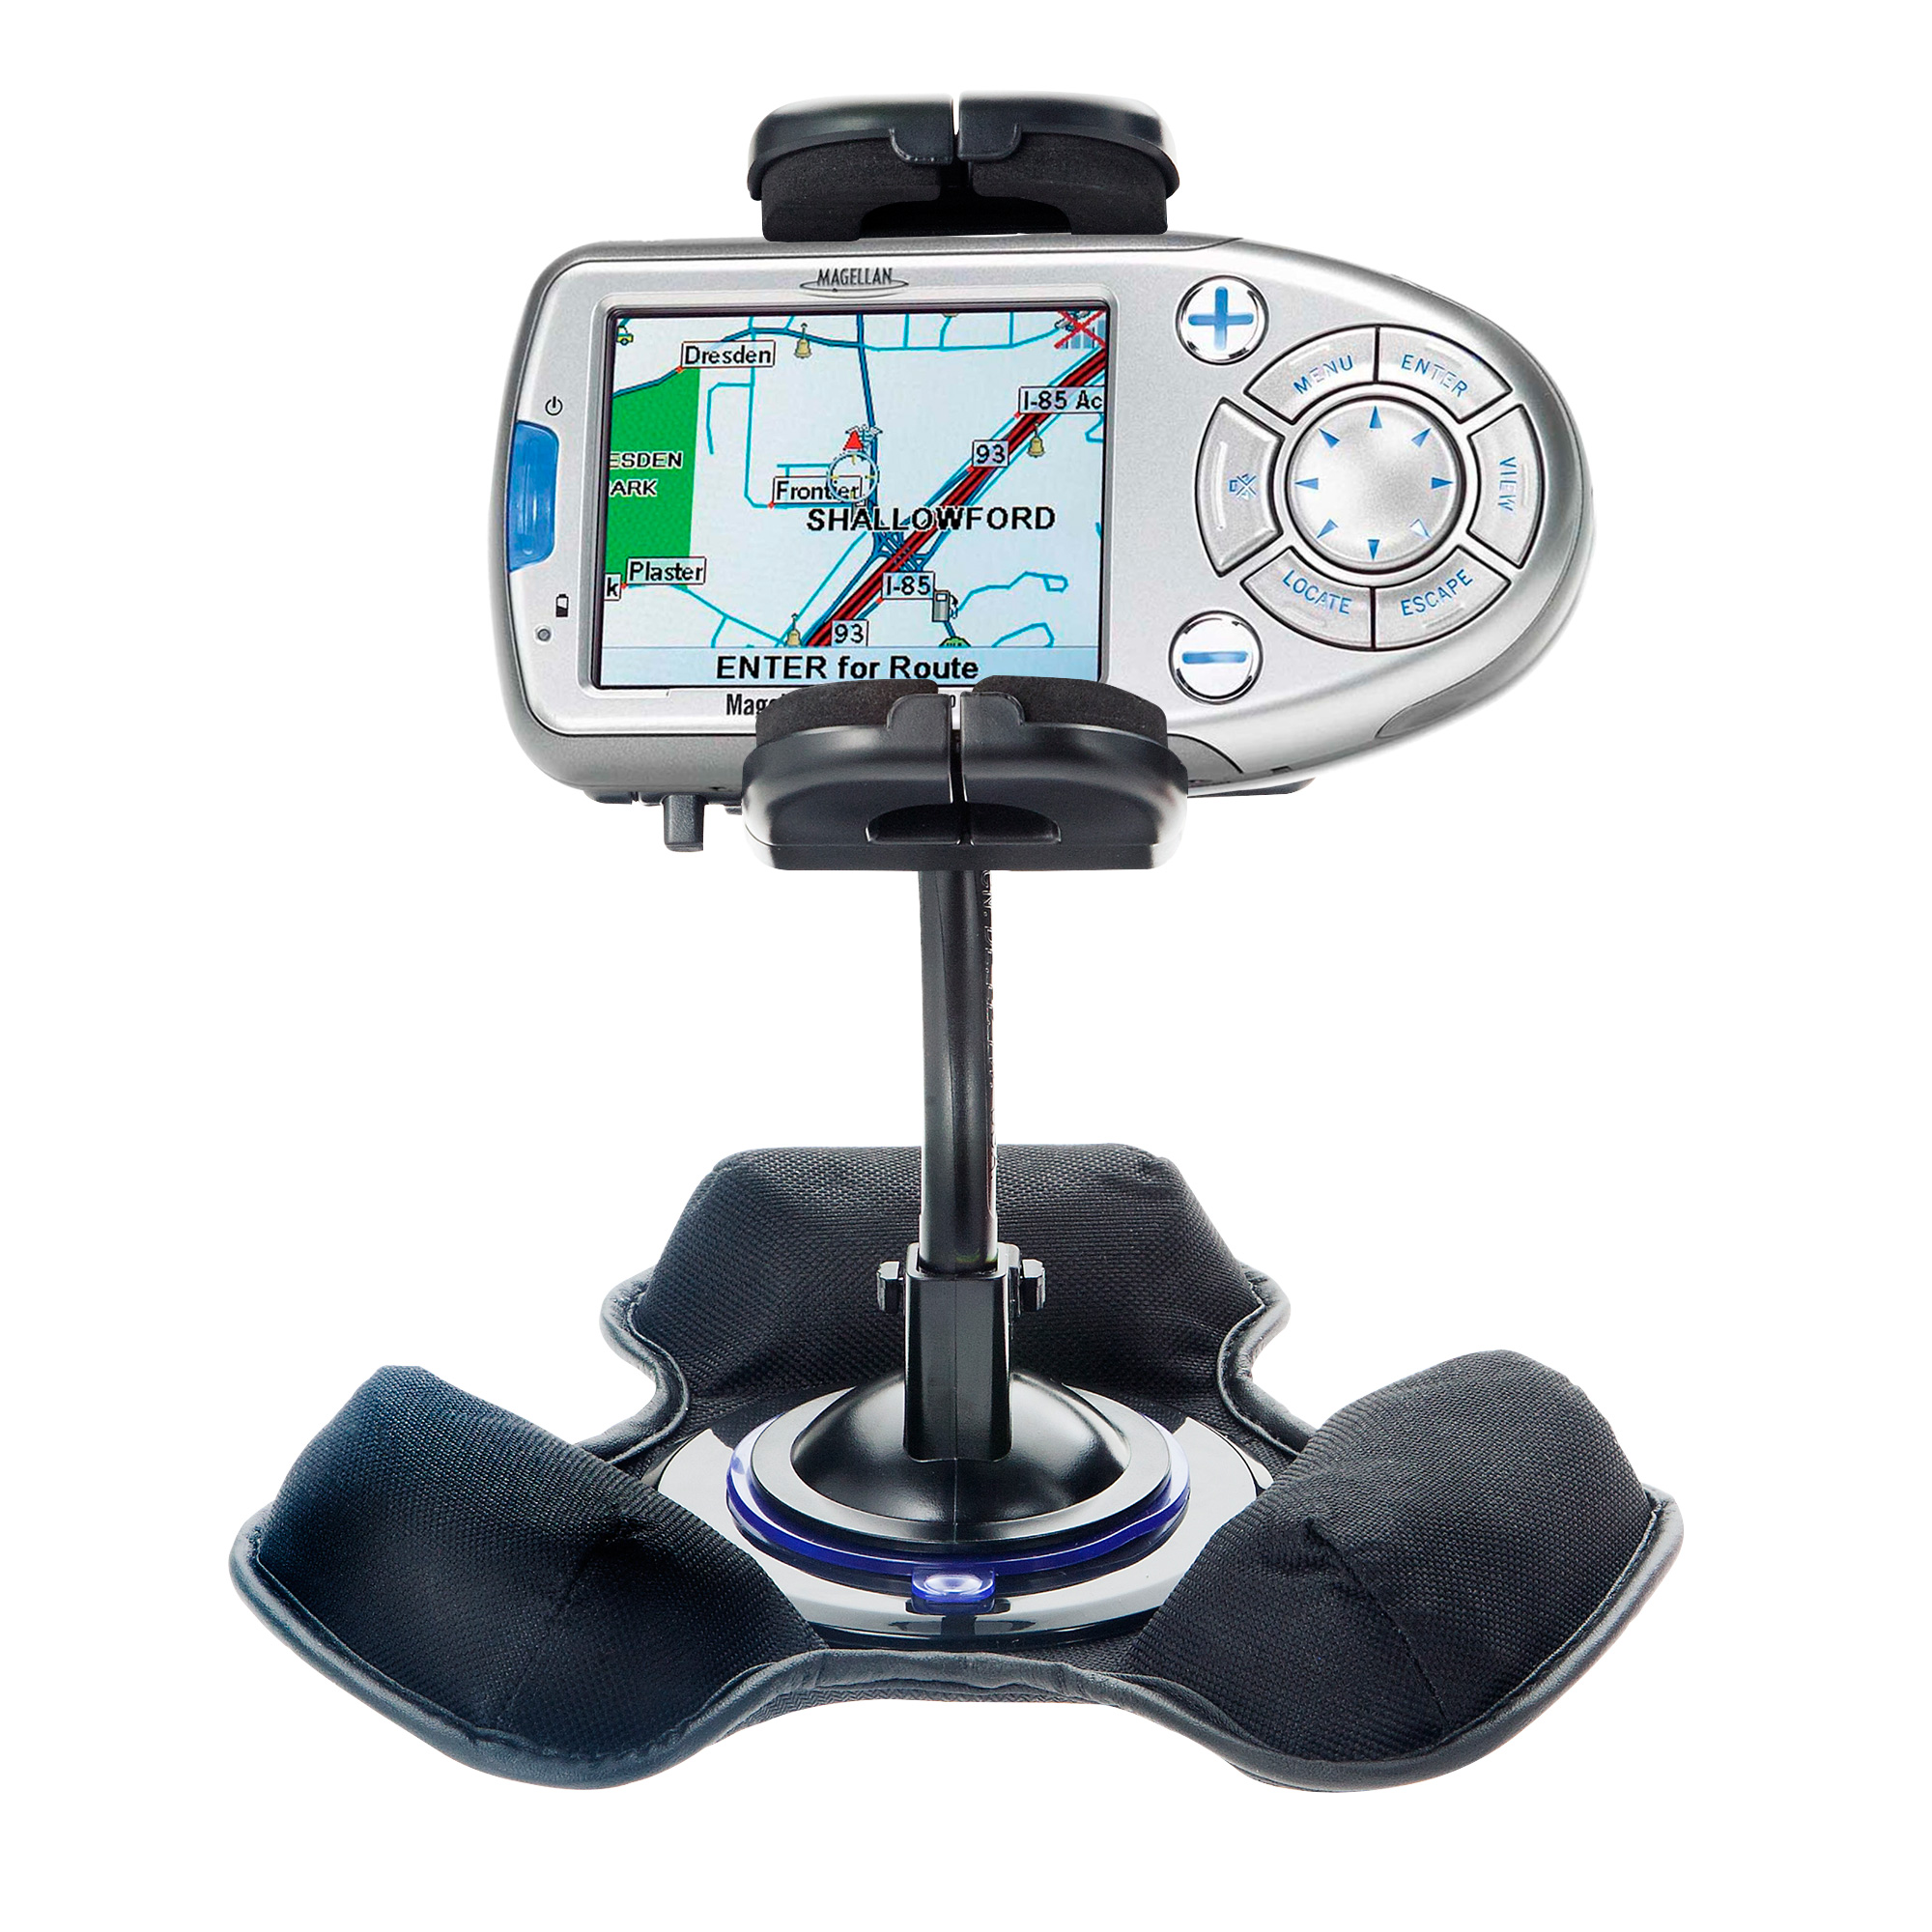 Dash and Windshield Holder compatible with the Magellan Roadmate 800